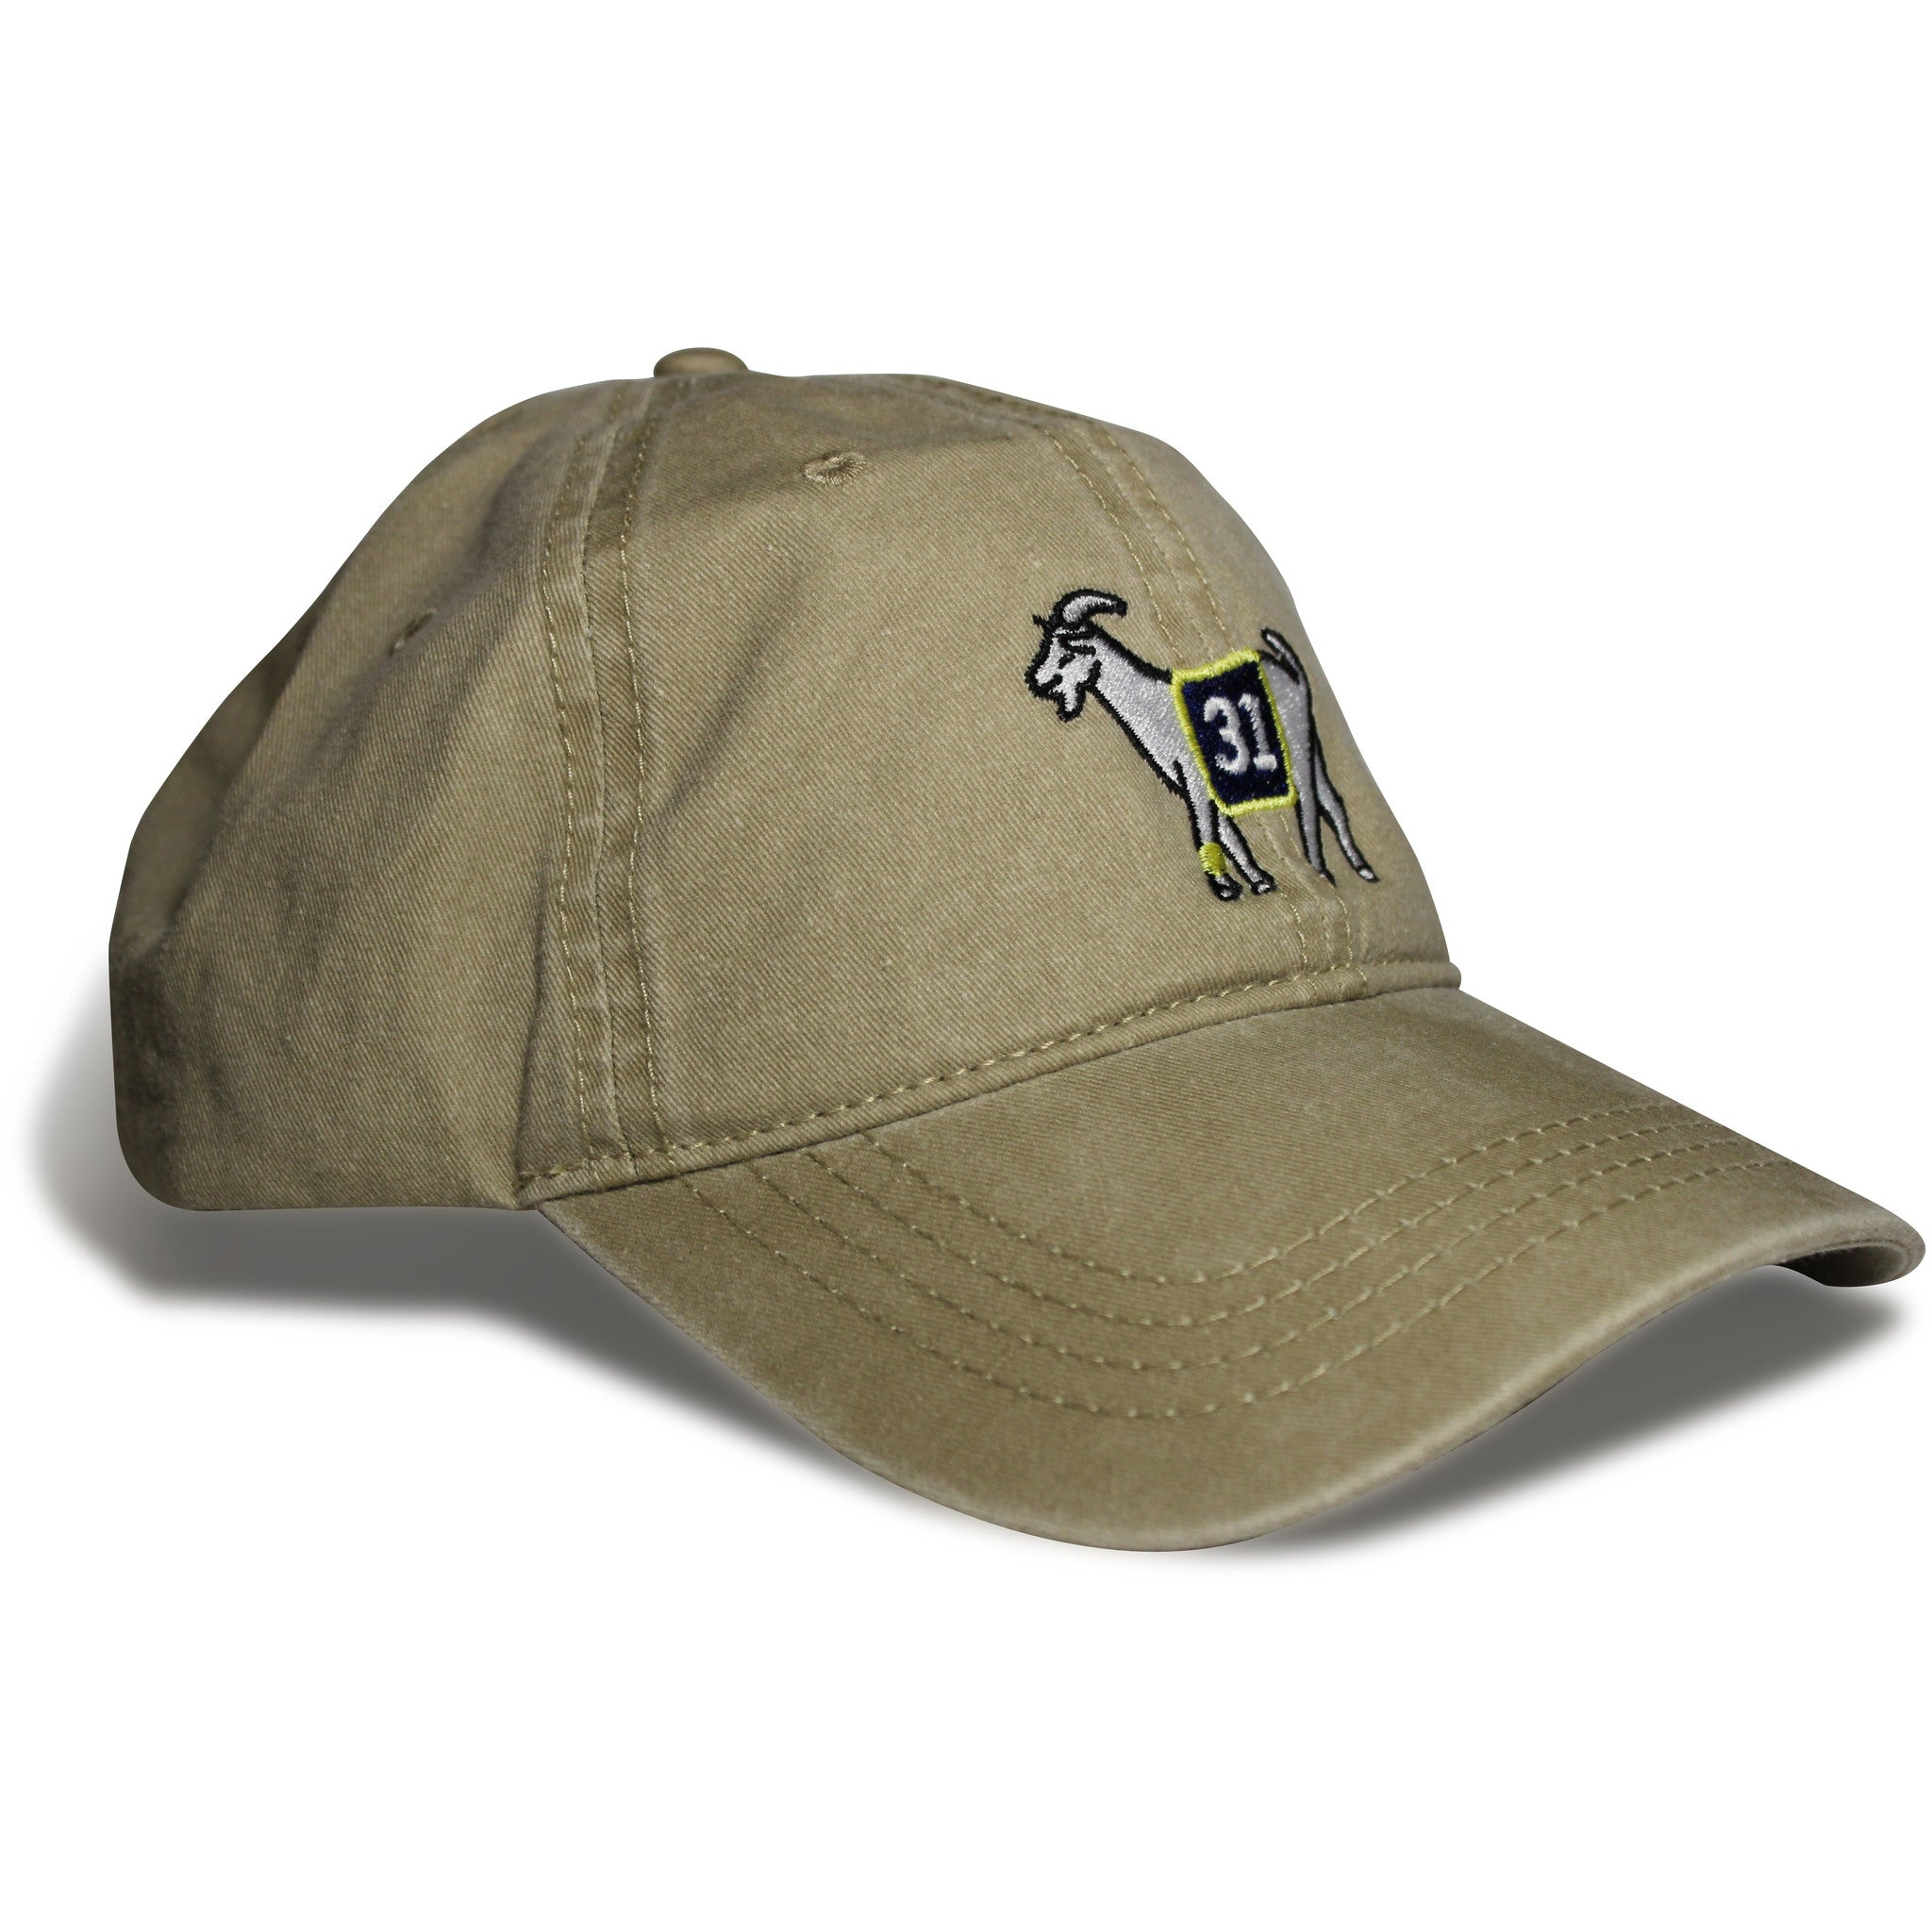 Indiana #31 GOAT Dad hat (Khaki)